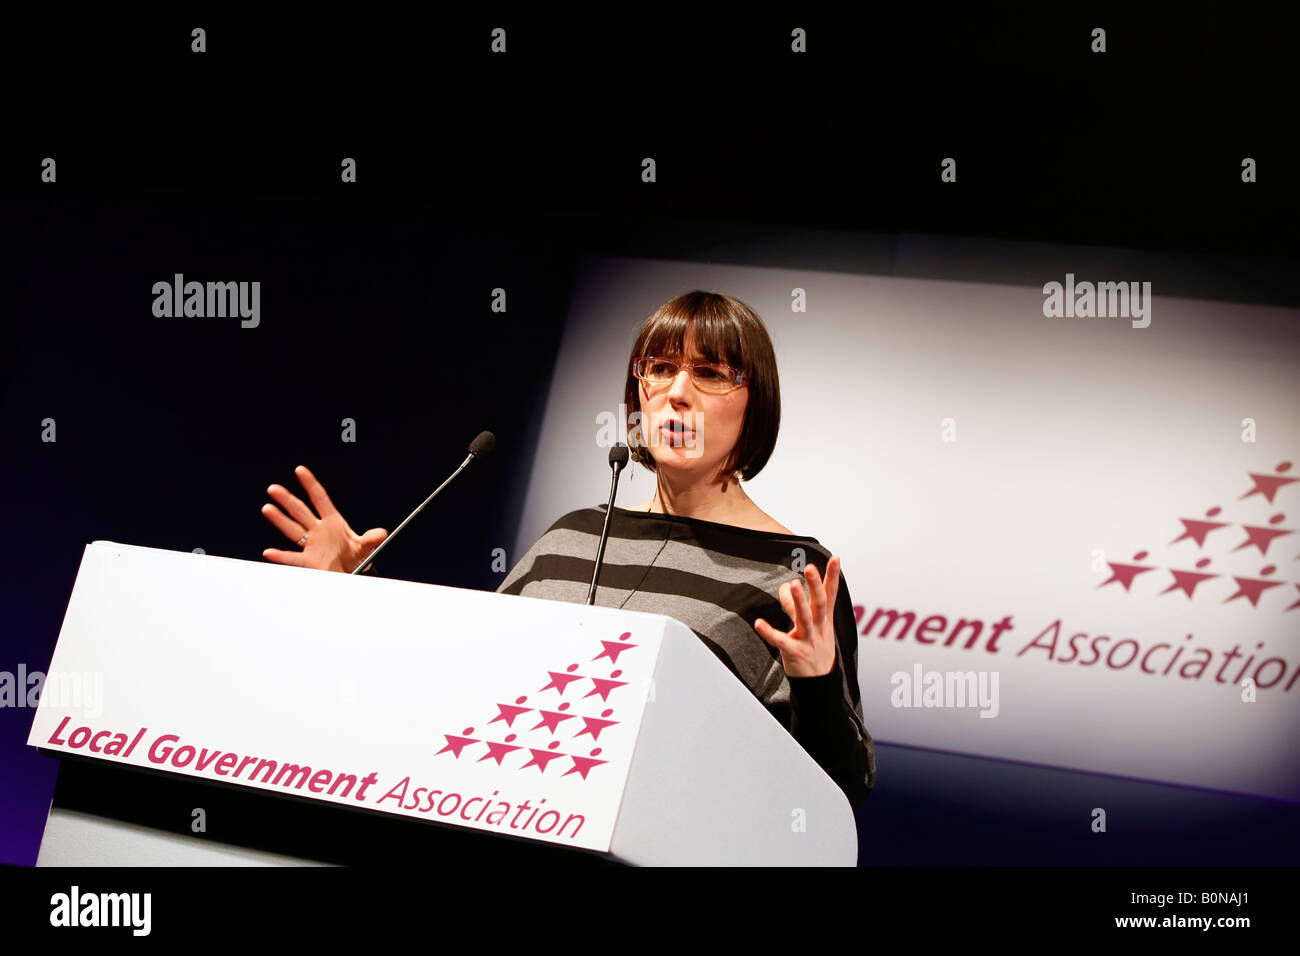 Julia Goldsworthy MP addressing the Local Government Association conference - Stock Image